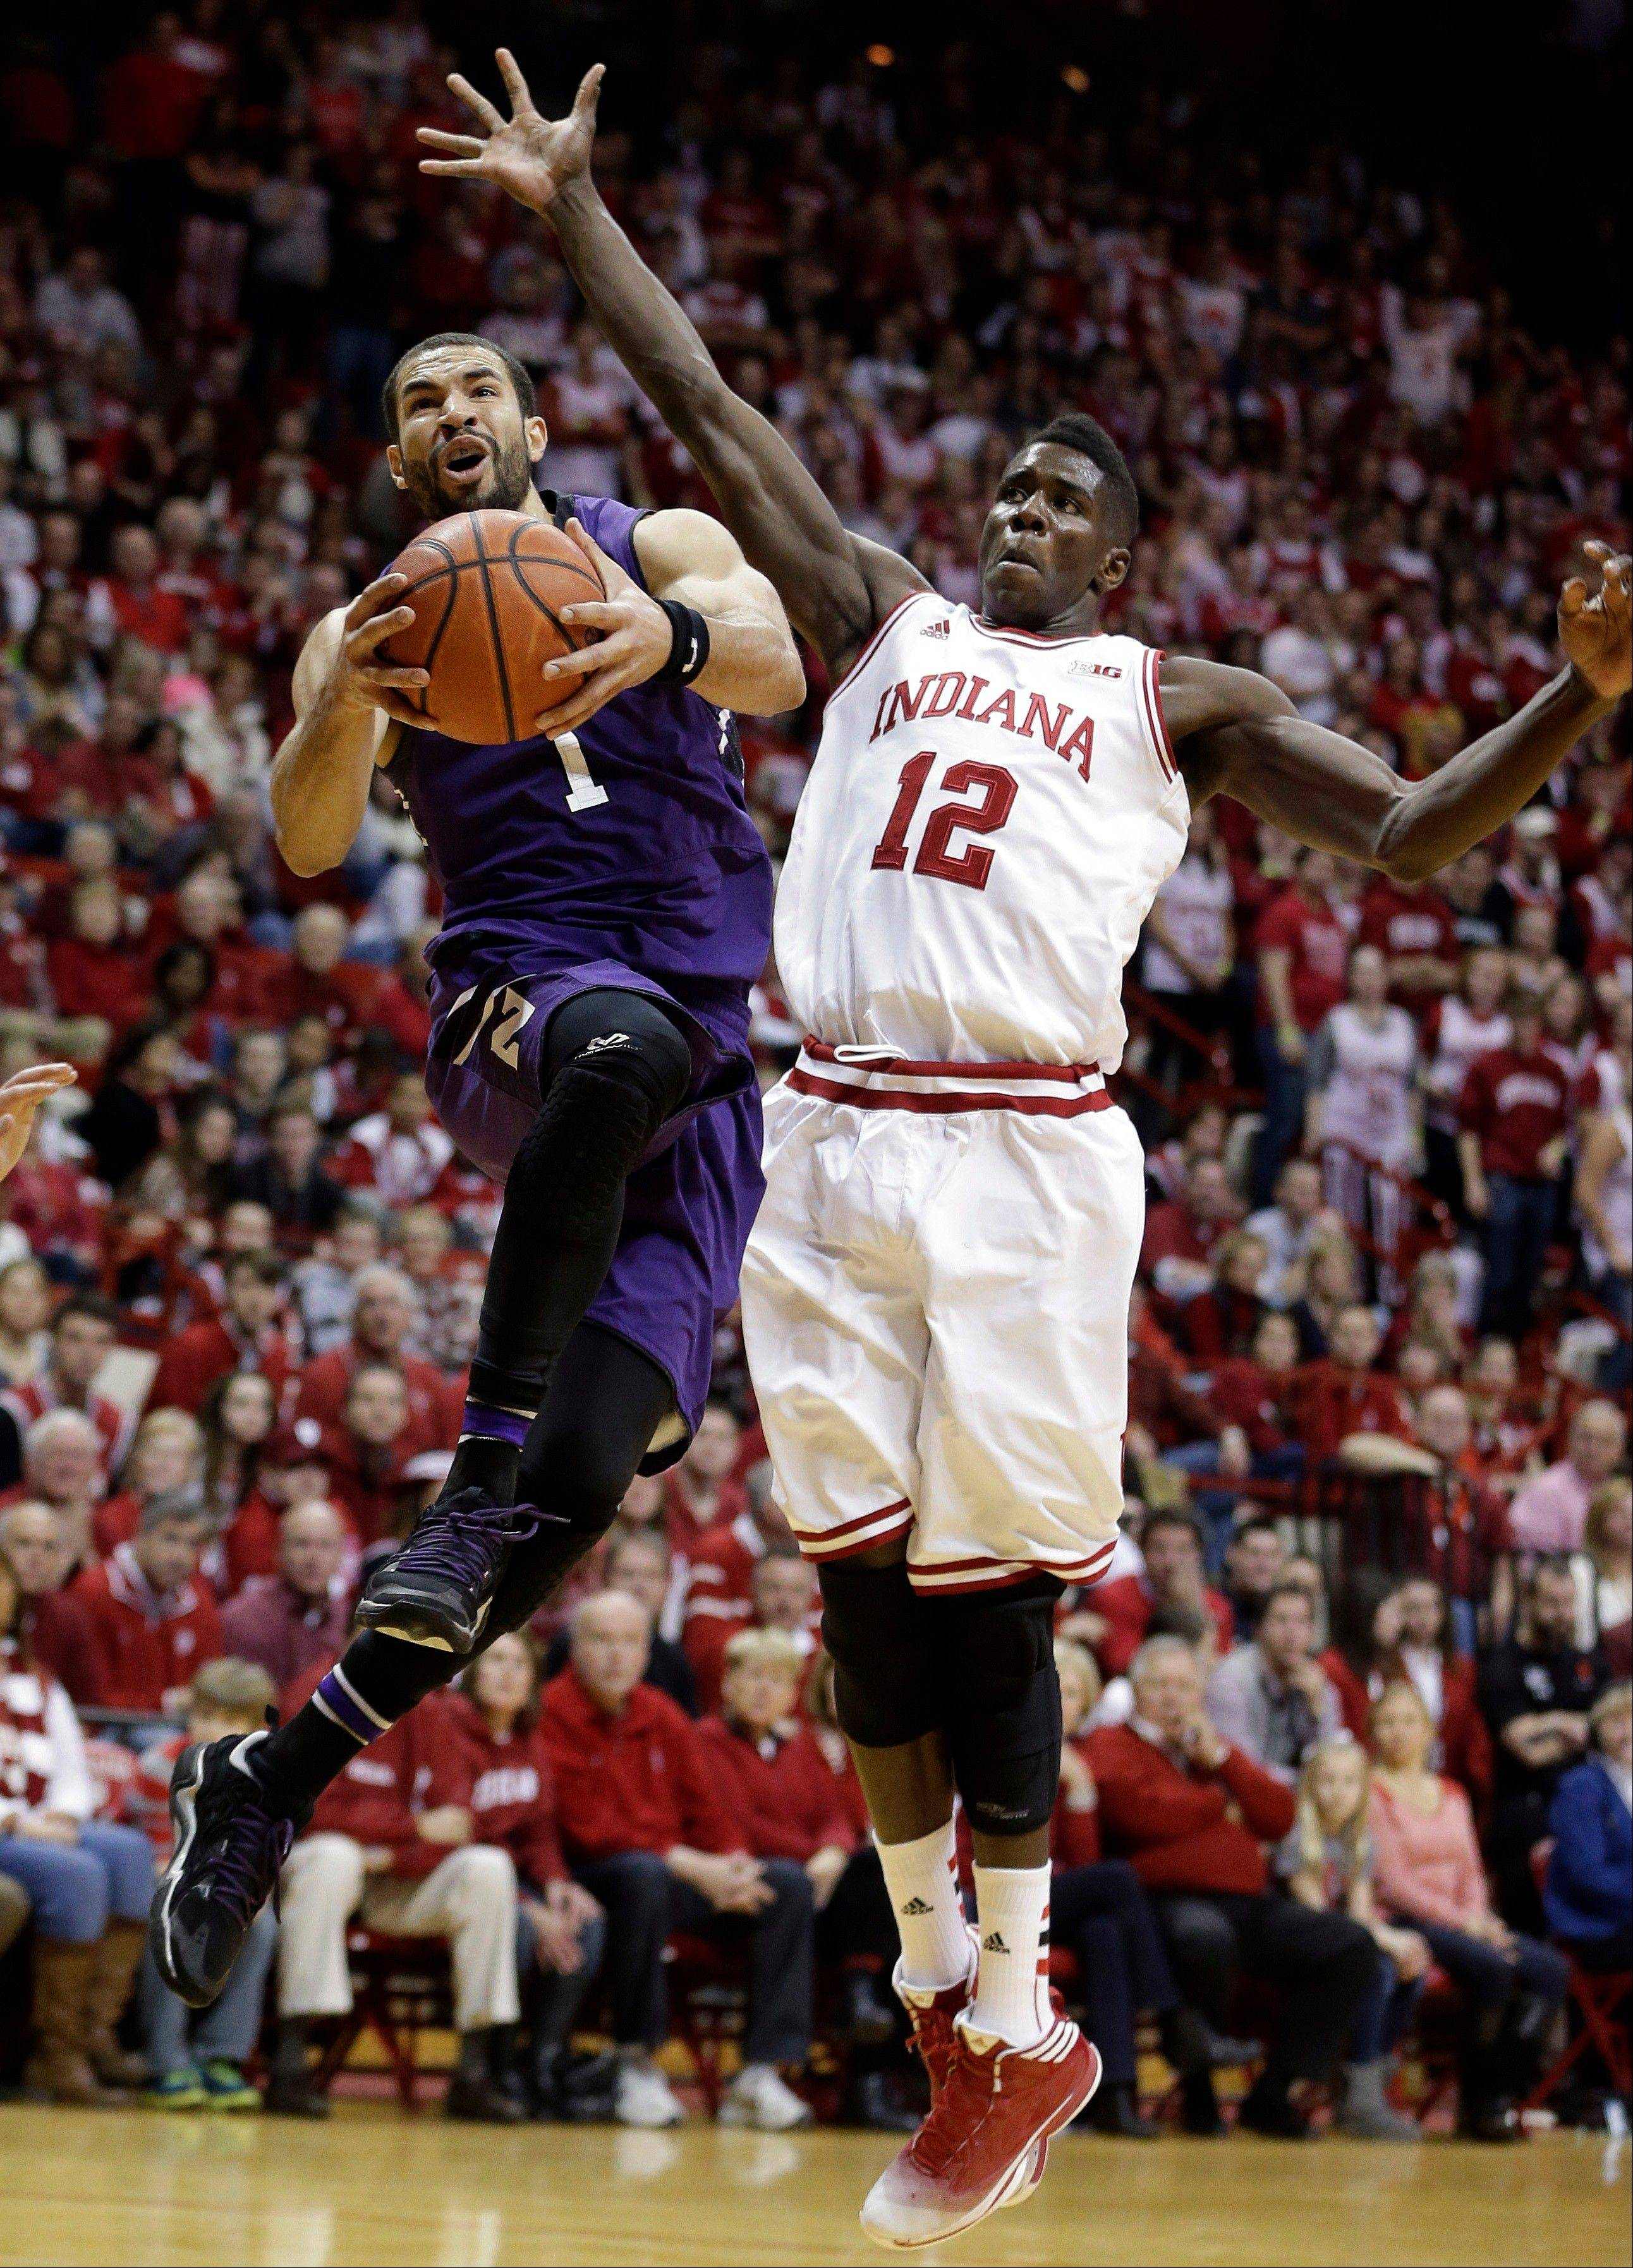 Northwestern's Drew Crawford (1) put up a shot against Indiana's Hanner Mosquera-Perea (12) during the first half of an NCAA college basketball game Saturday, Jan. 18, 2014, in Bloomington, Ind. (AP Photo/Darron Cummings)